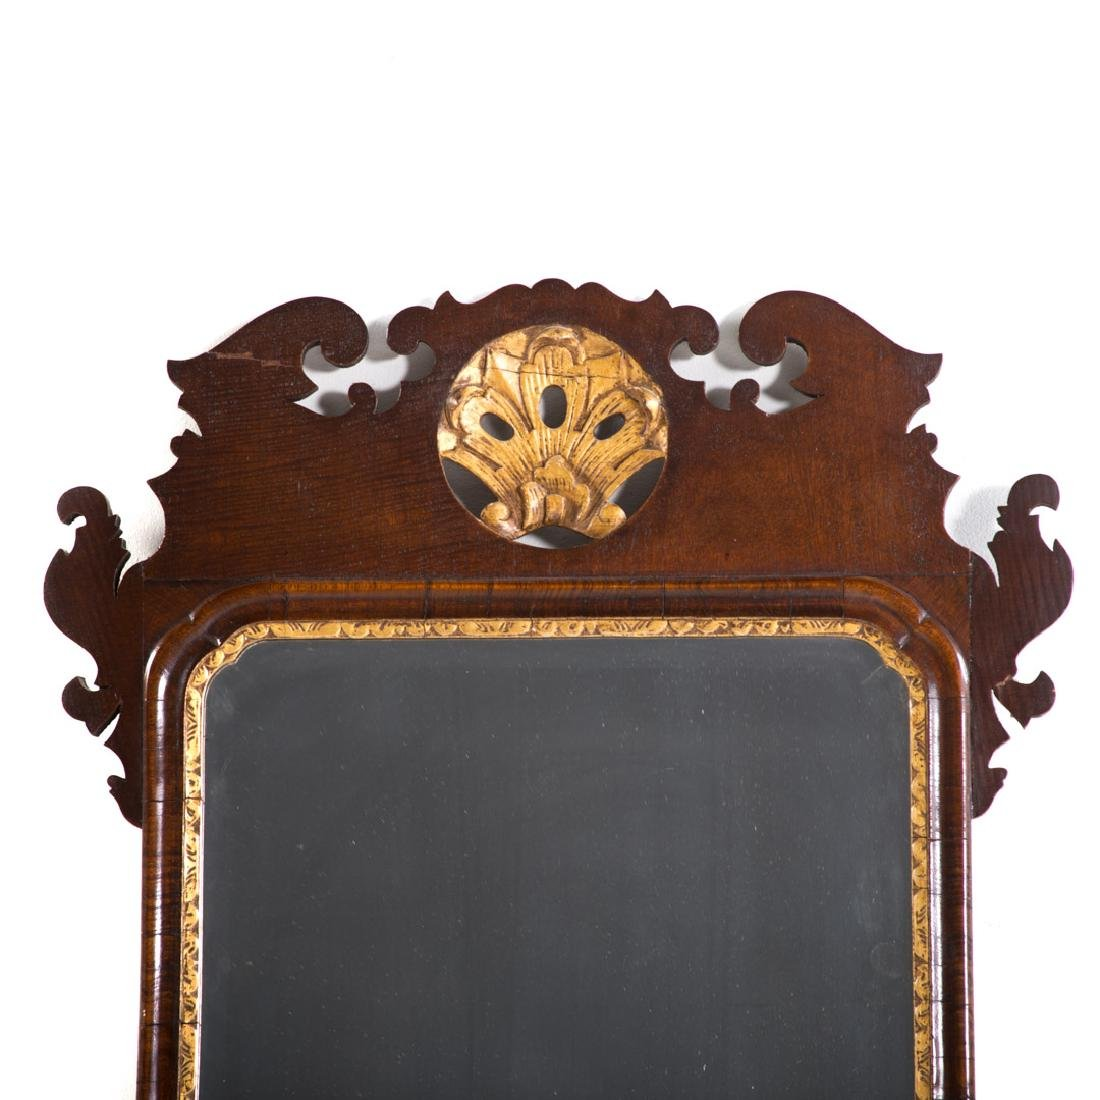 Chippendale mahogany & parcel gilt mirror - 2